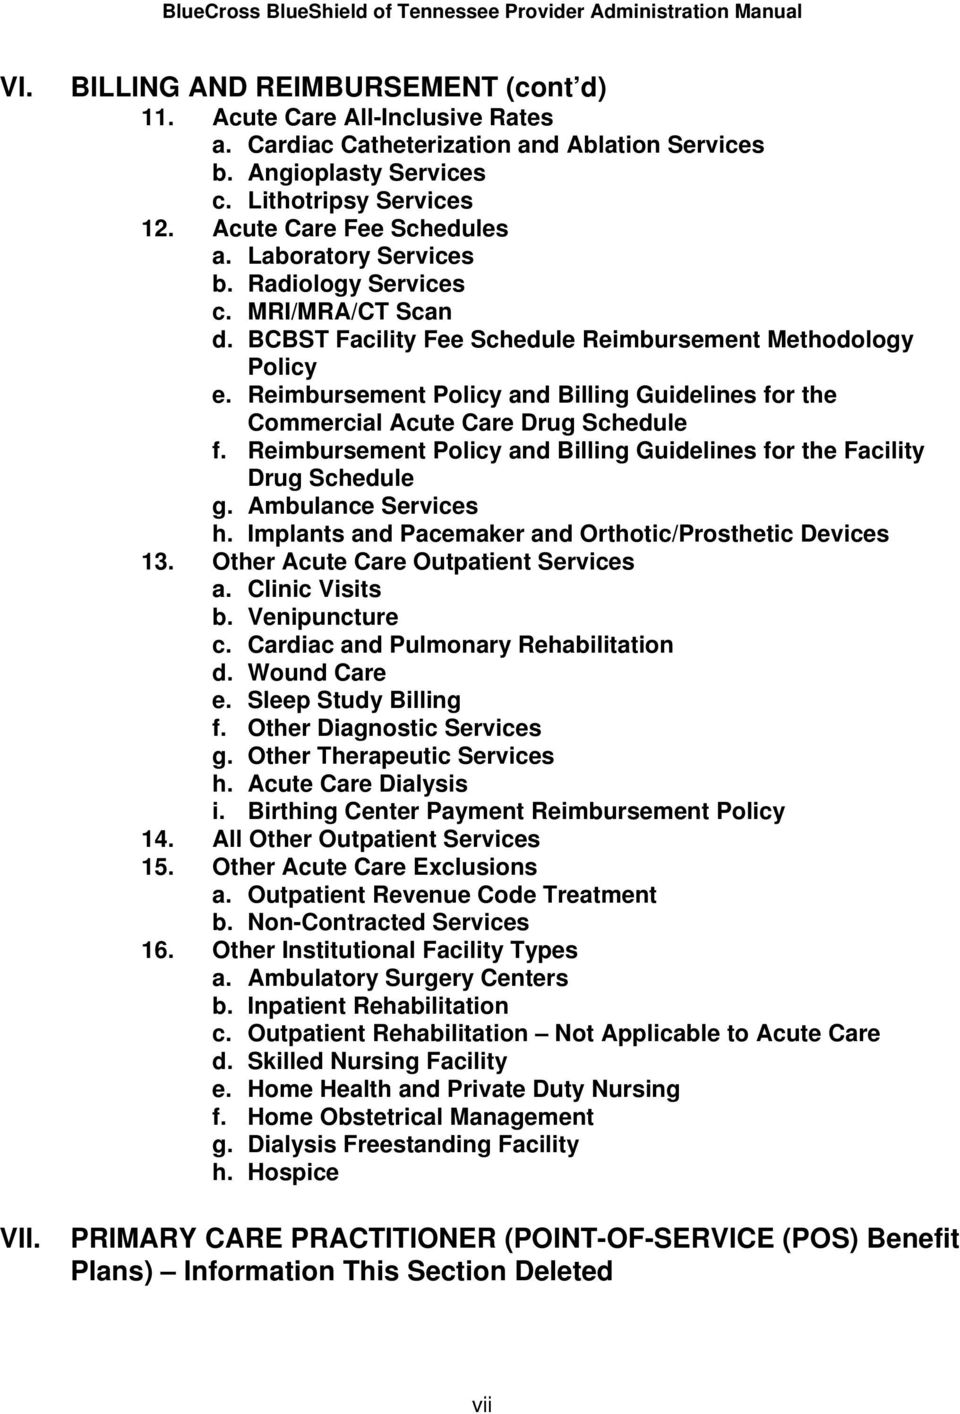 Reimbursement Policy and Billing Guidelines for the Commercial Acute Care Drug Schedule f. Reimbursement Policy and Billing Guidelines for the Facility Drug Schedule g. Ambulance Services h.